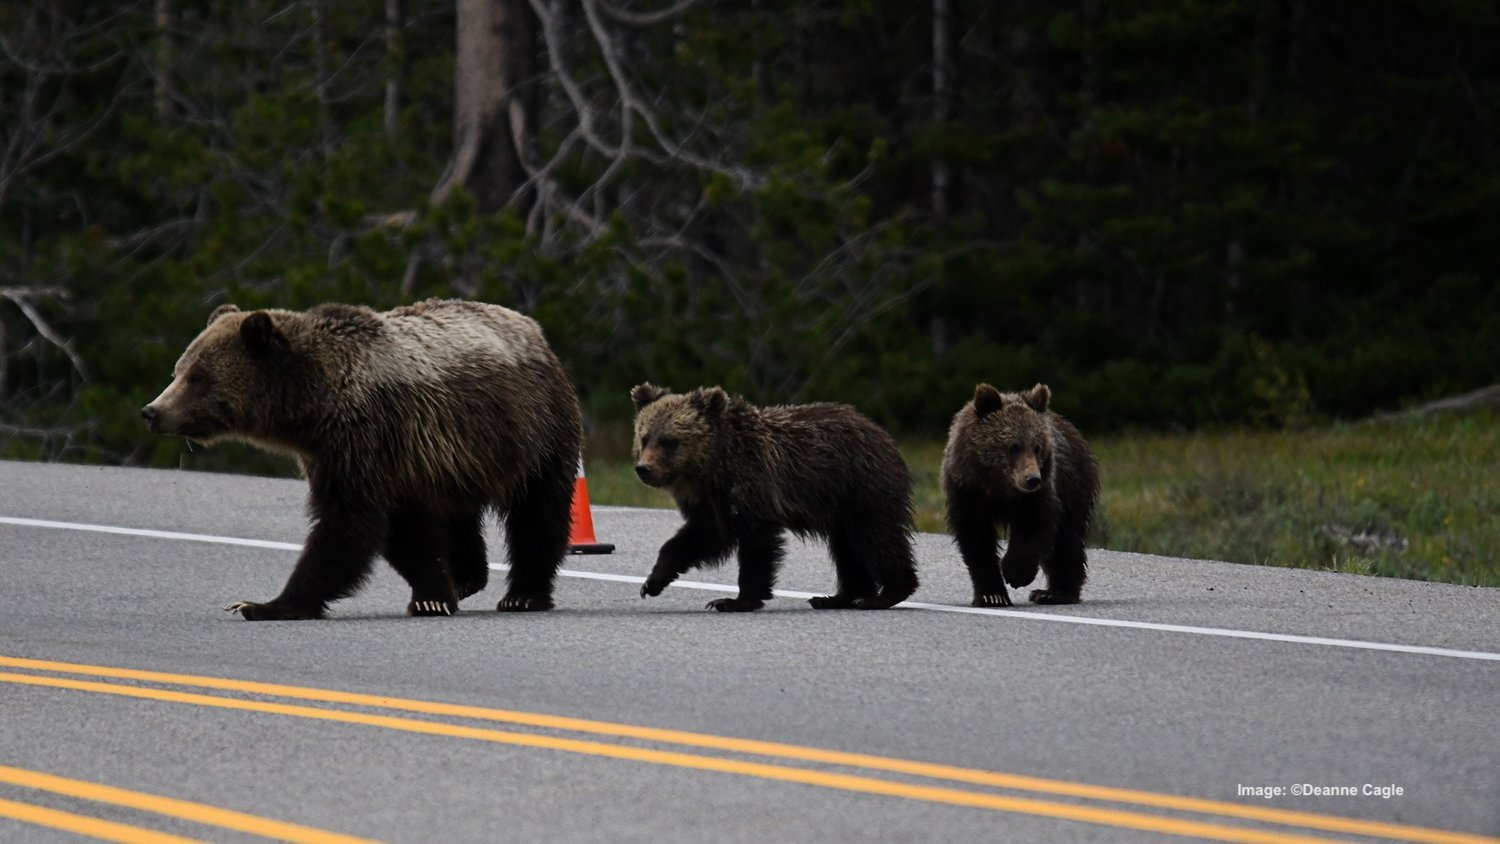 THERE IS A 100-YARD RULE FOR BEAR PROXIMITY IN THESE TWO PARKS. HOWEVER, YOU CAN PHOTOGRAPH THEM FROM YOUR VEHICLE. BEAR #794 AND HER CUBS, GRAND TETON NATIONAL PARK. IMAGE:  ©DEANNE CAGLE